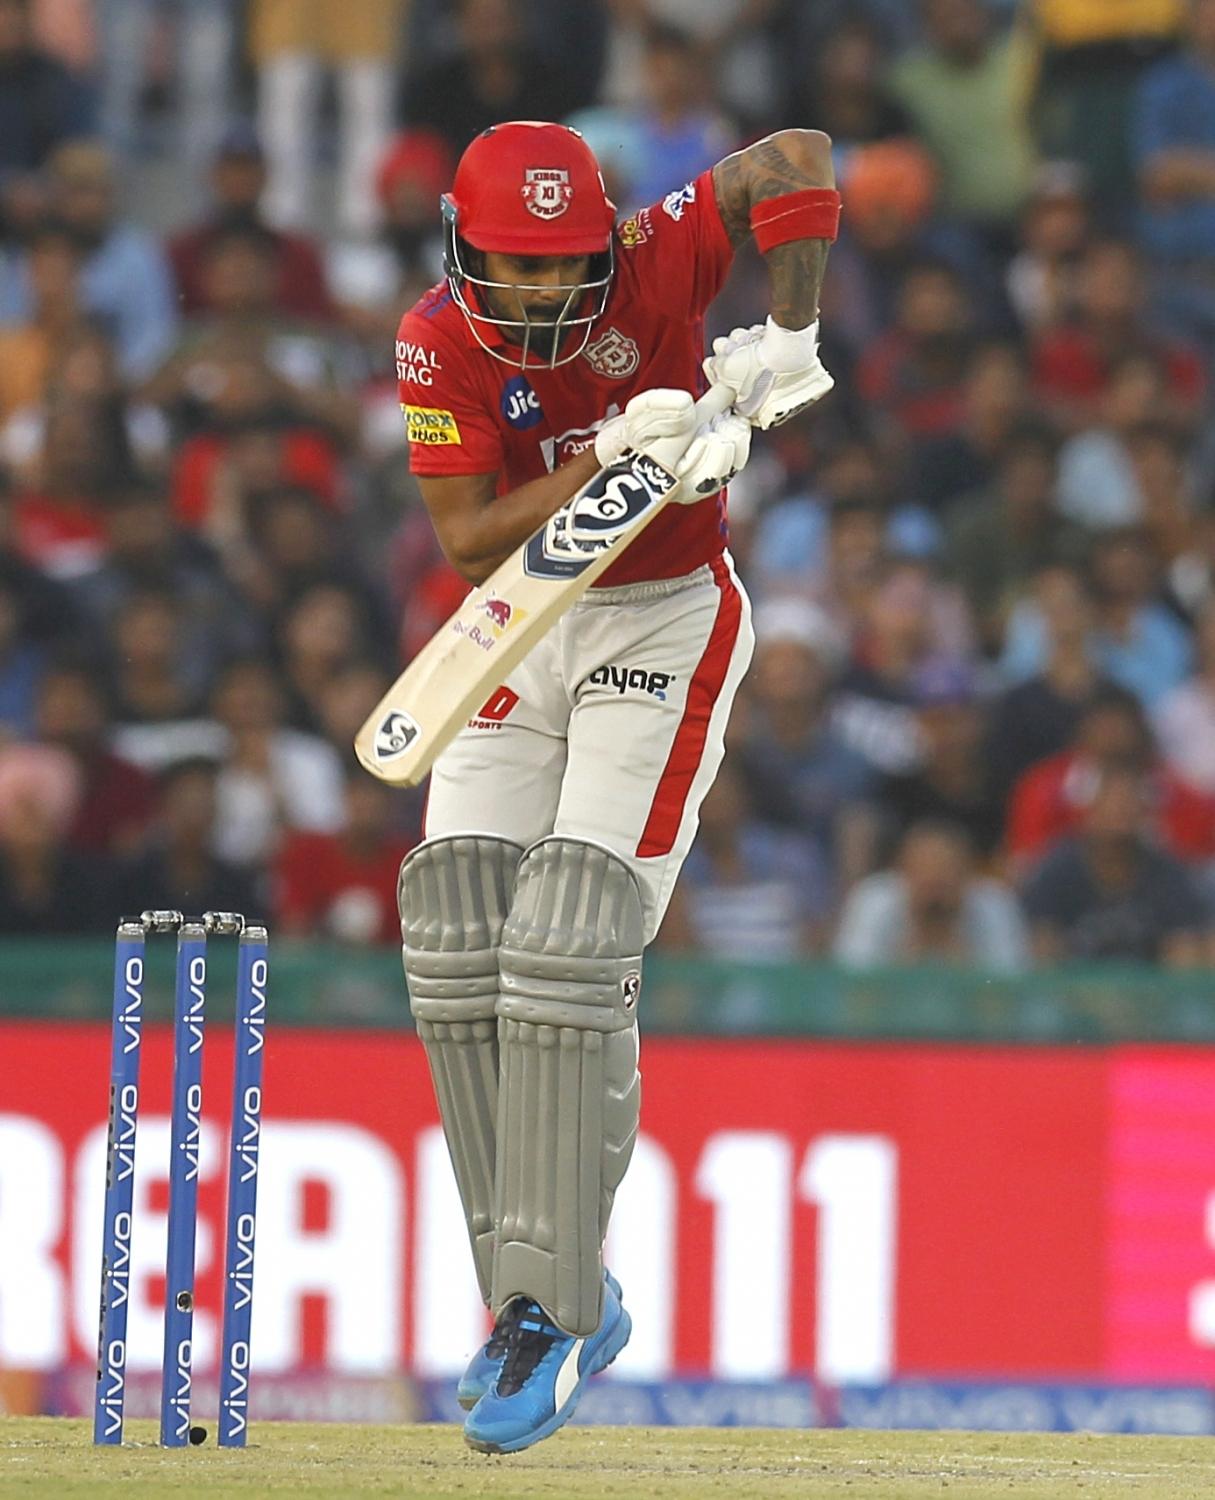 KL Rahul scored 71 not out off 57 balls to help KXIP chase down the target | IANS